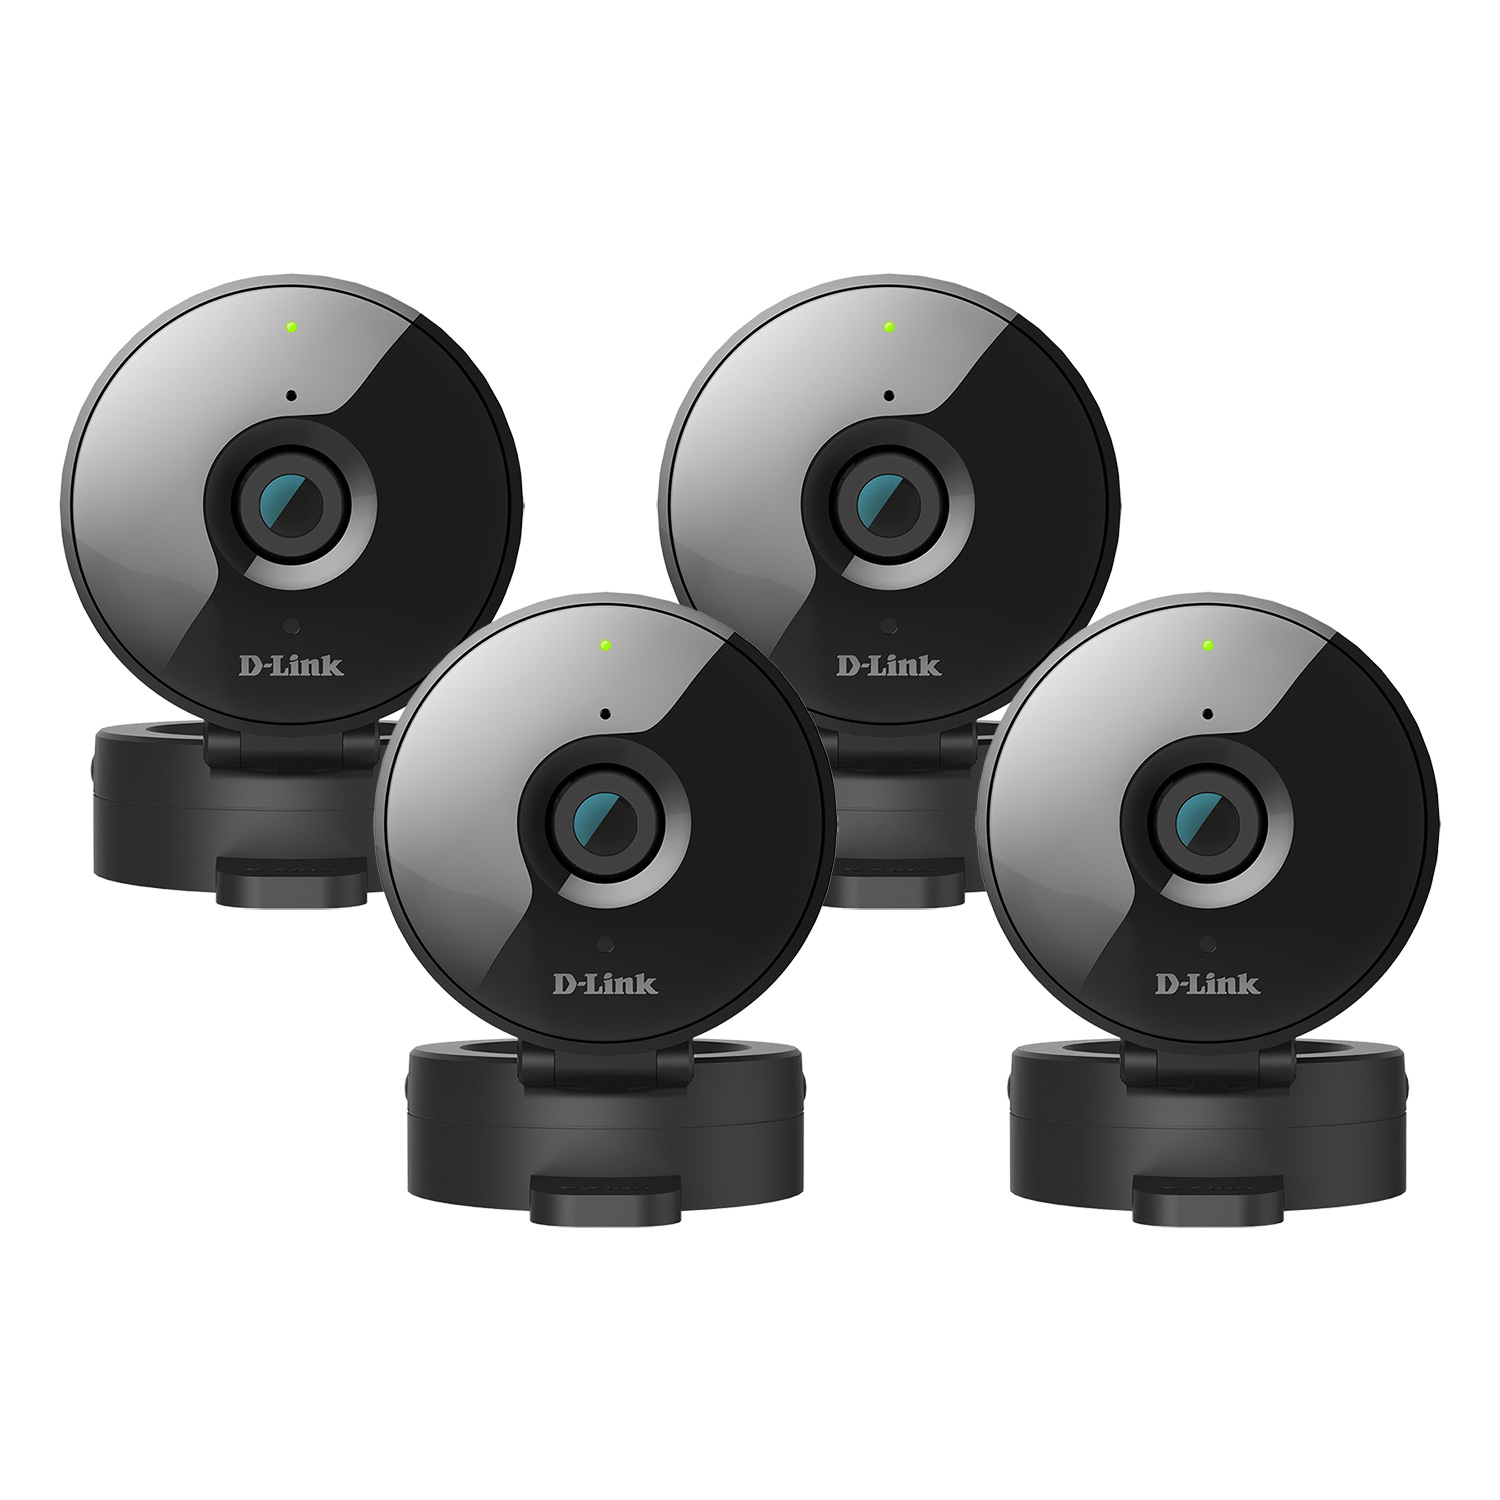 Refurbished 4-Pack D-Link HD WiFi 720P Home Security Camera with Night Vision - DCS-936L, Works with Google Assistant